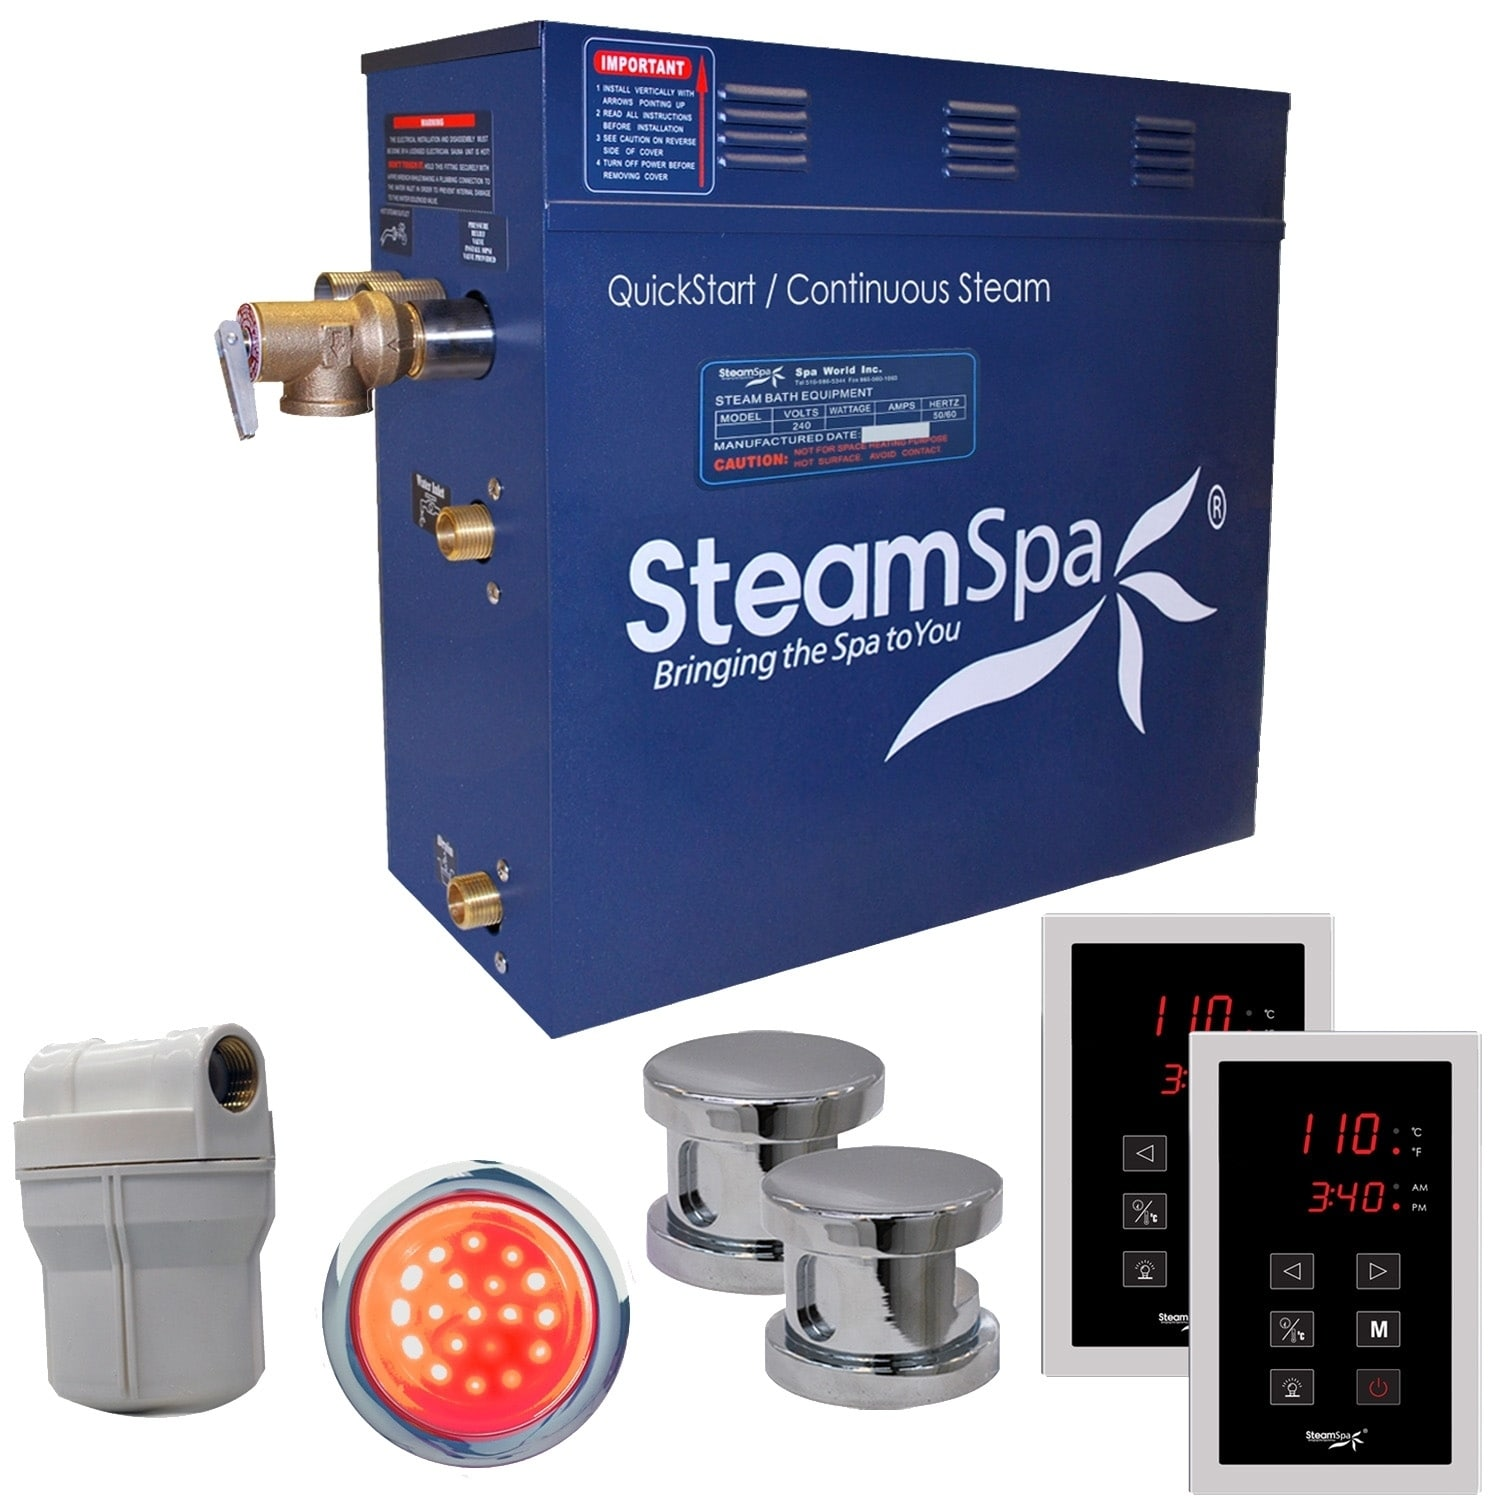 Shop For Steamspa Royal 10 5kw Touch Pad Steam Generator Package In Chrome Get Free Shipping On Everything At Overstock Your Online Home Improvement Outlet Store Get 5 In Rewards With Club O 8946926